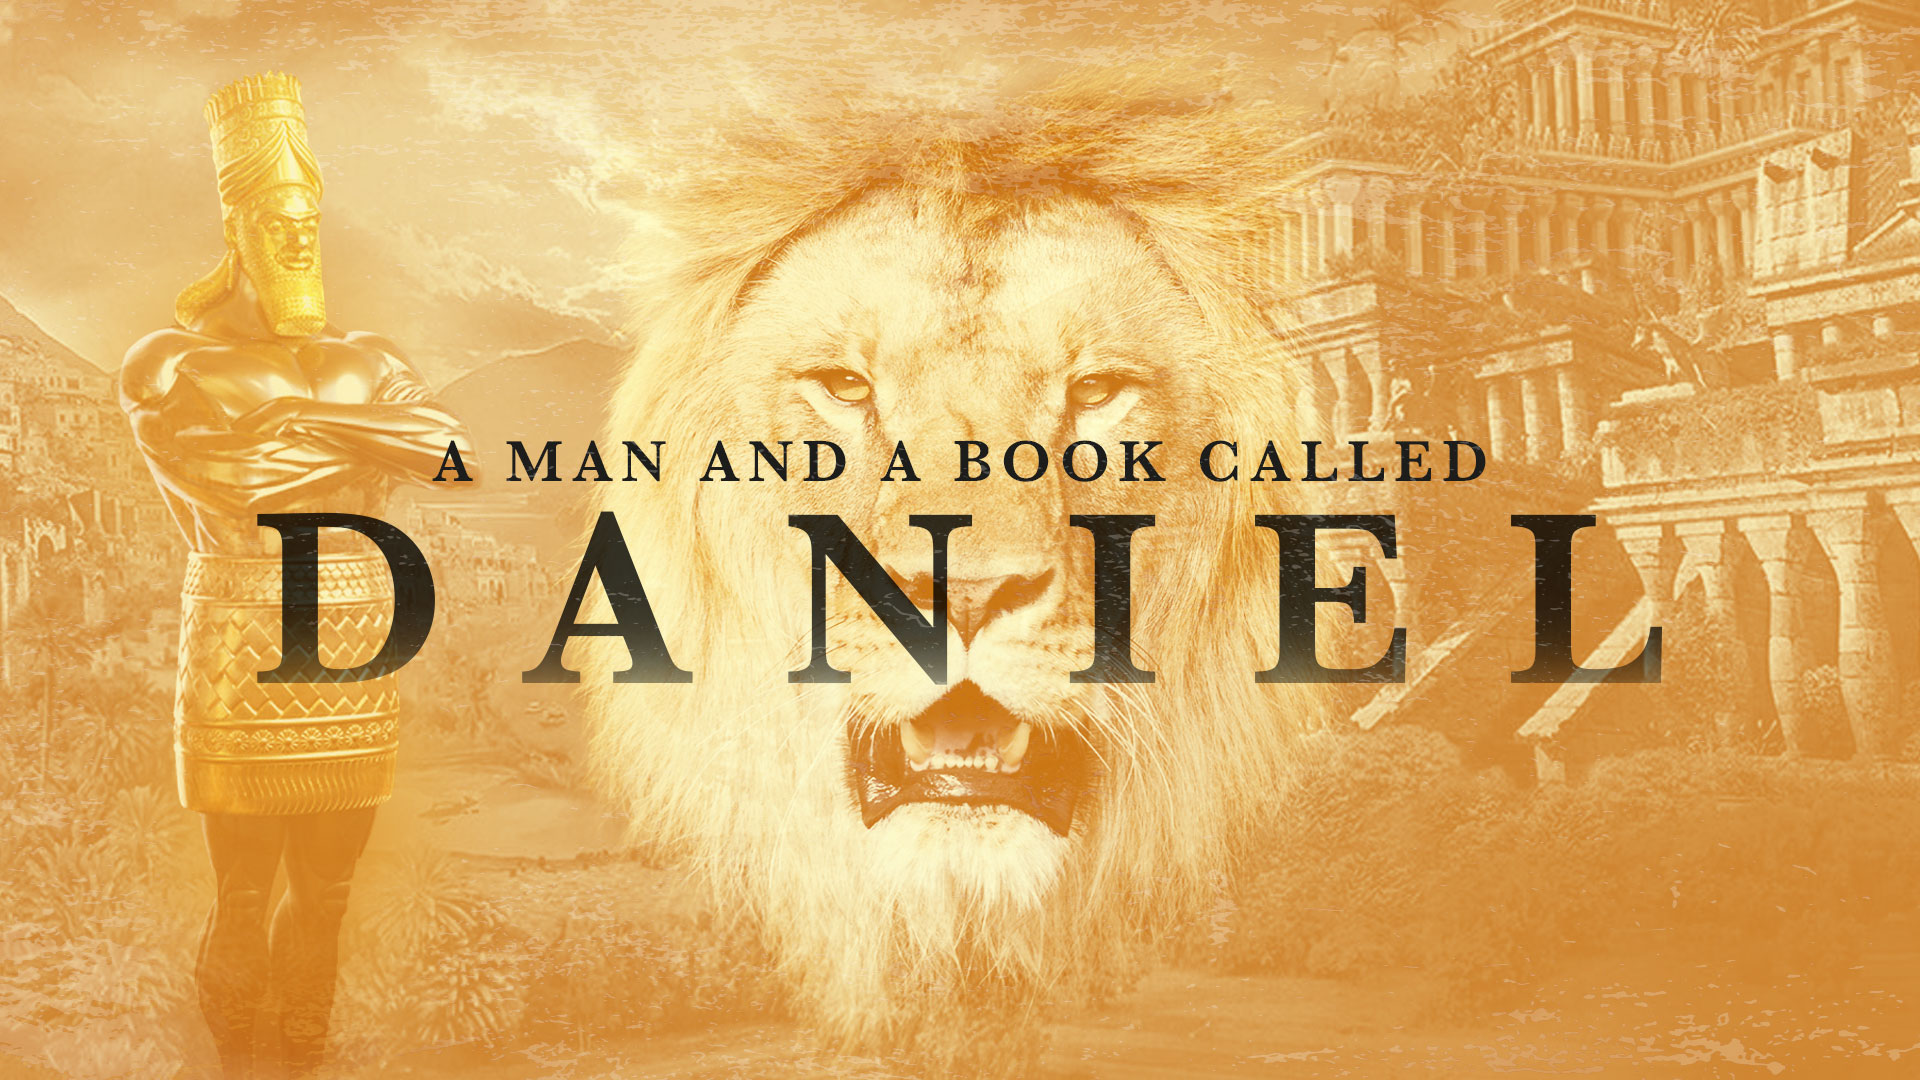 A Man and a Book called Daniel (Pt5) All things work together for good